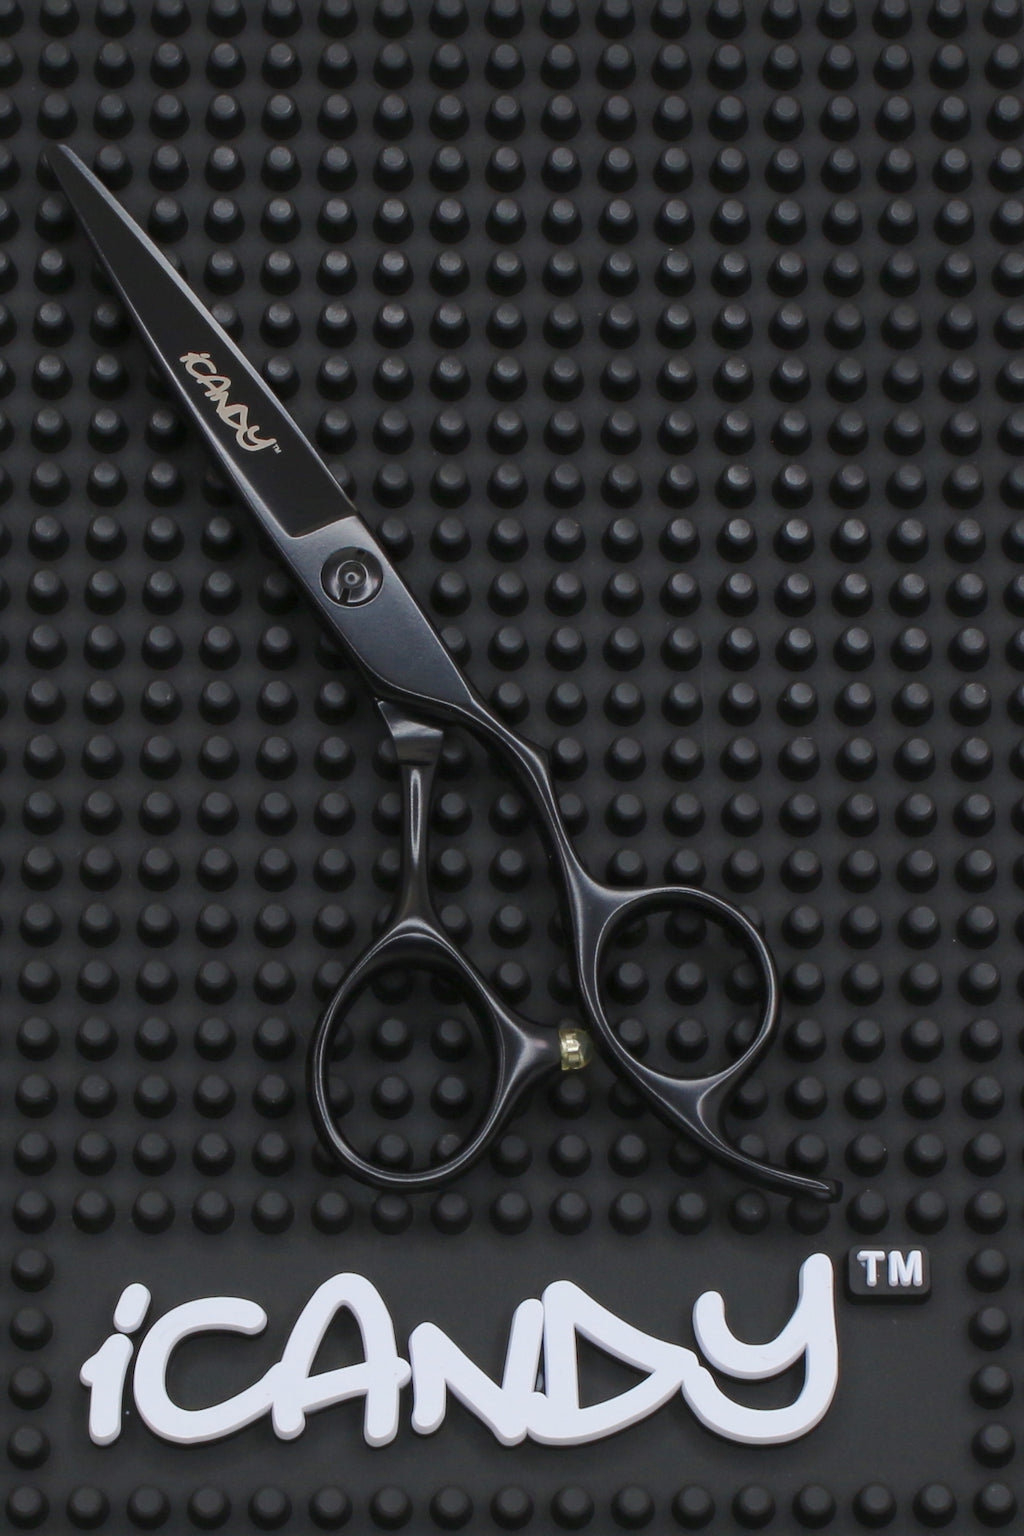 iCandy Creative Series Black Scissors - Limited Edition ! (5.5 inch) - iCandy Scissors